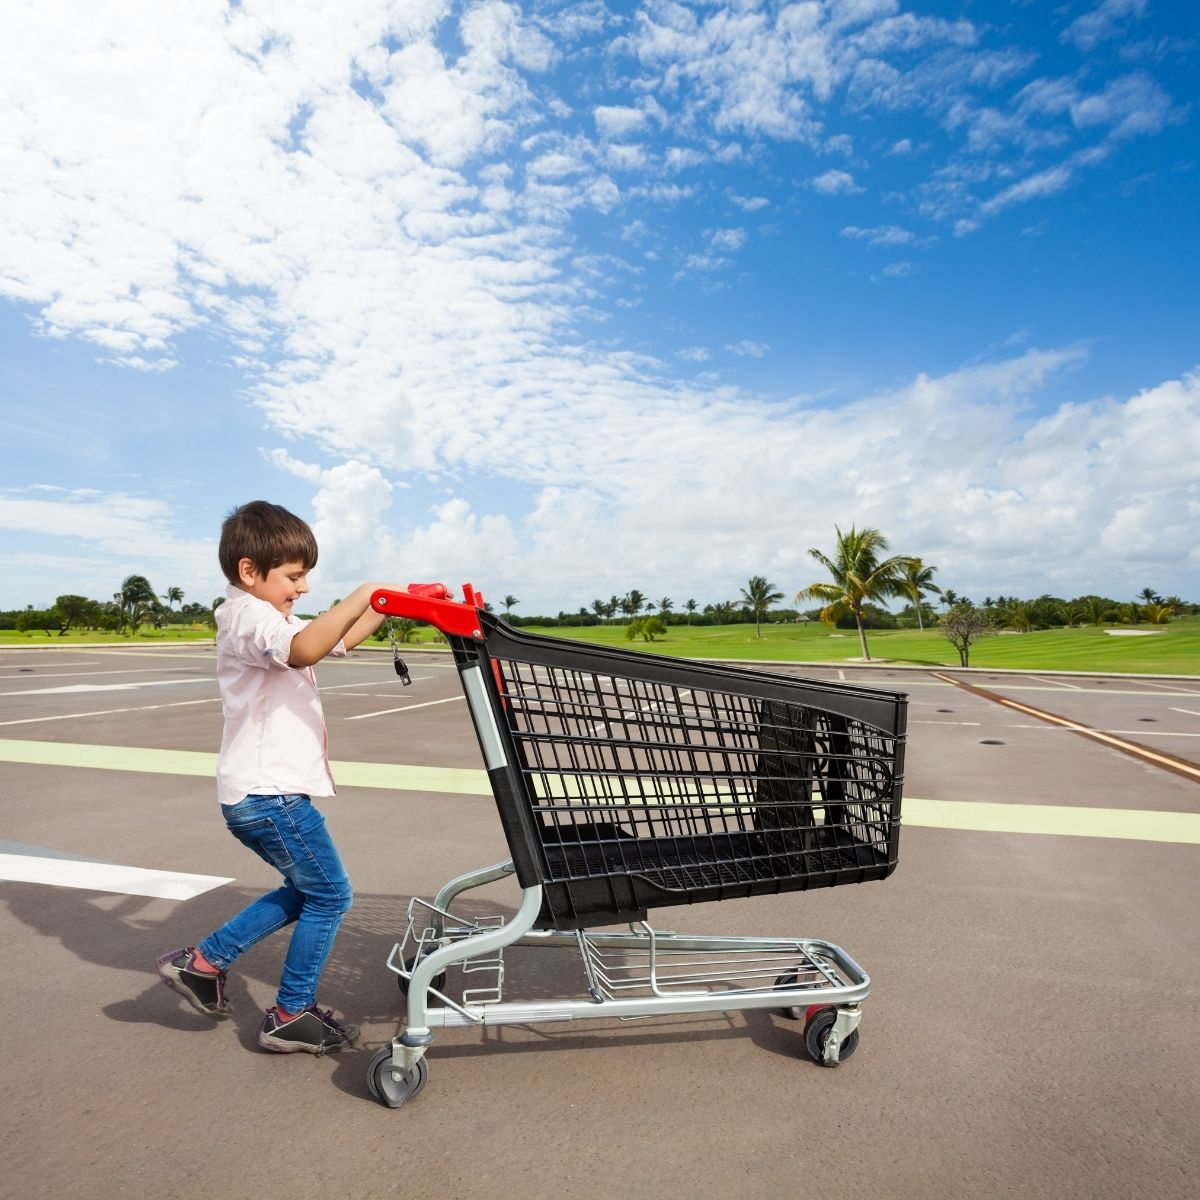 boy returning shopping cart in a parking lot